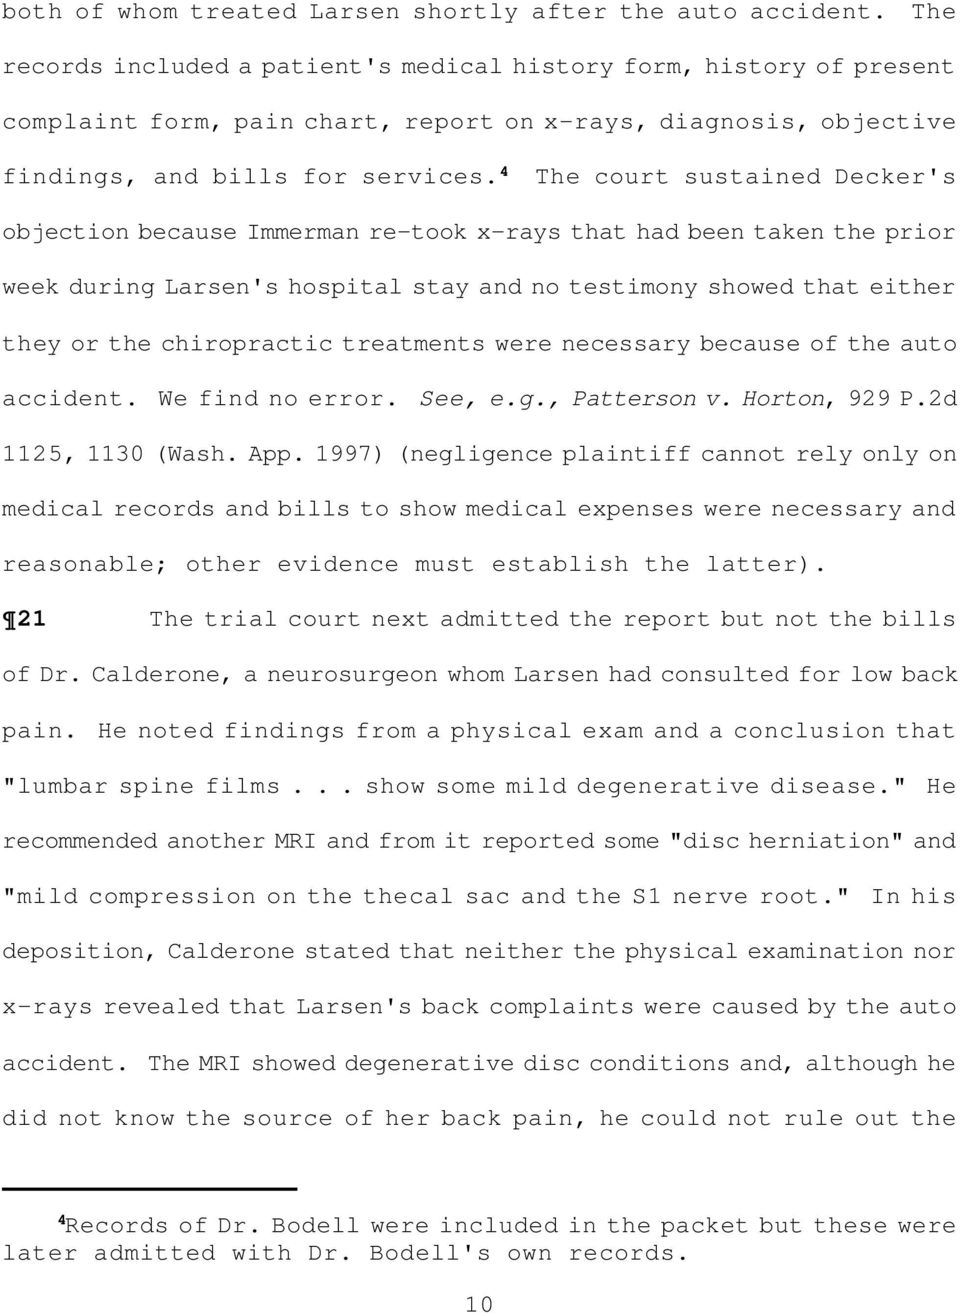 4 The court sustained Decker's objection because Immerman re-took x-rays that had been taken the prior week during Larsen's hospital stay and no testimony showed that either they or the chiropractic